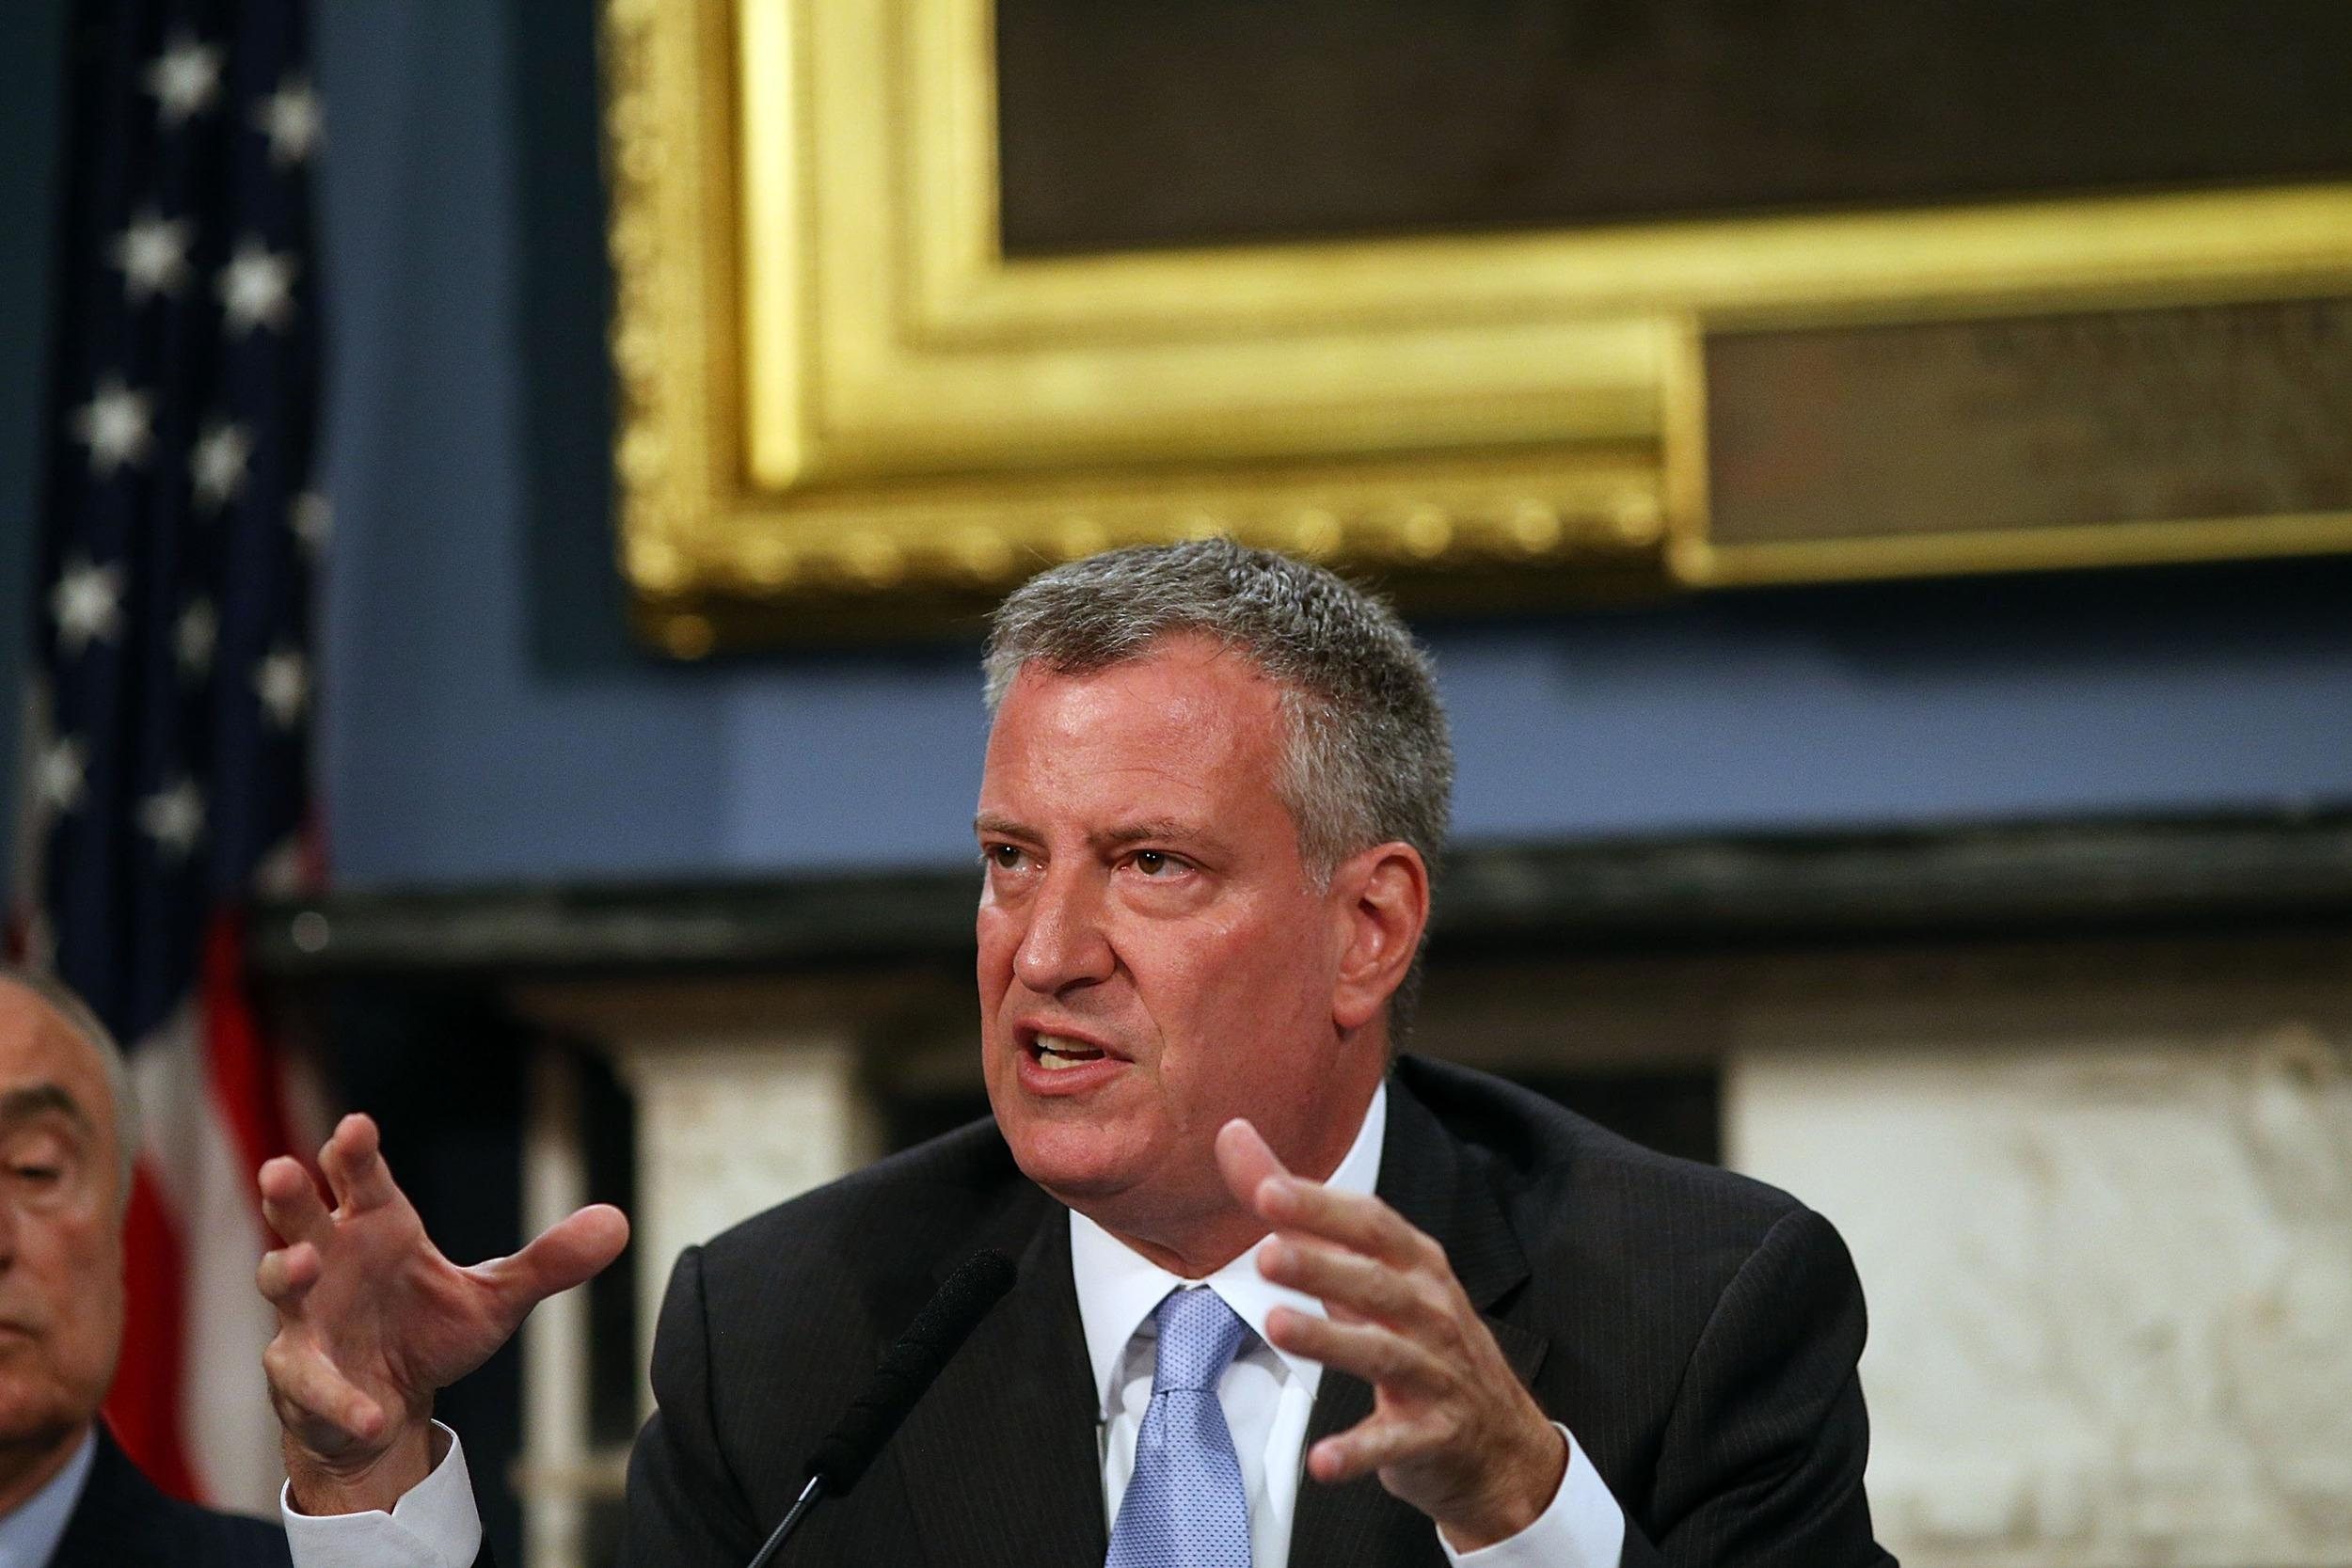 New York City Mayor Bill de Blasio will head a mayors' task force to study the wage gap that is hurting U.S. towns and cities.